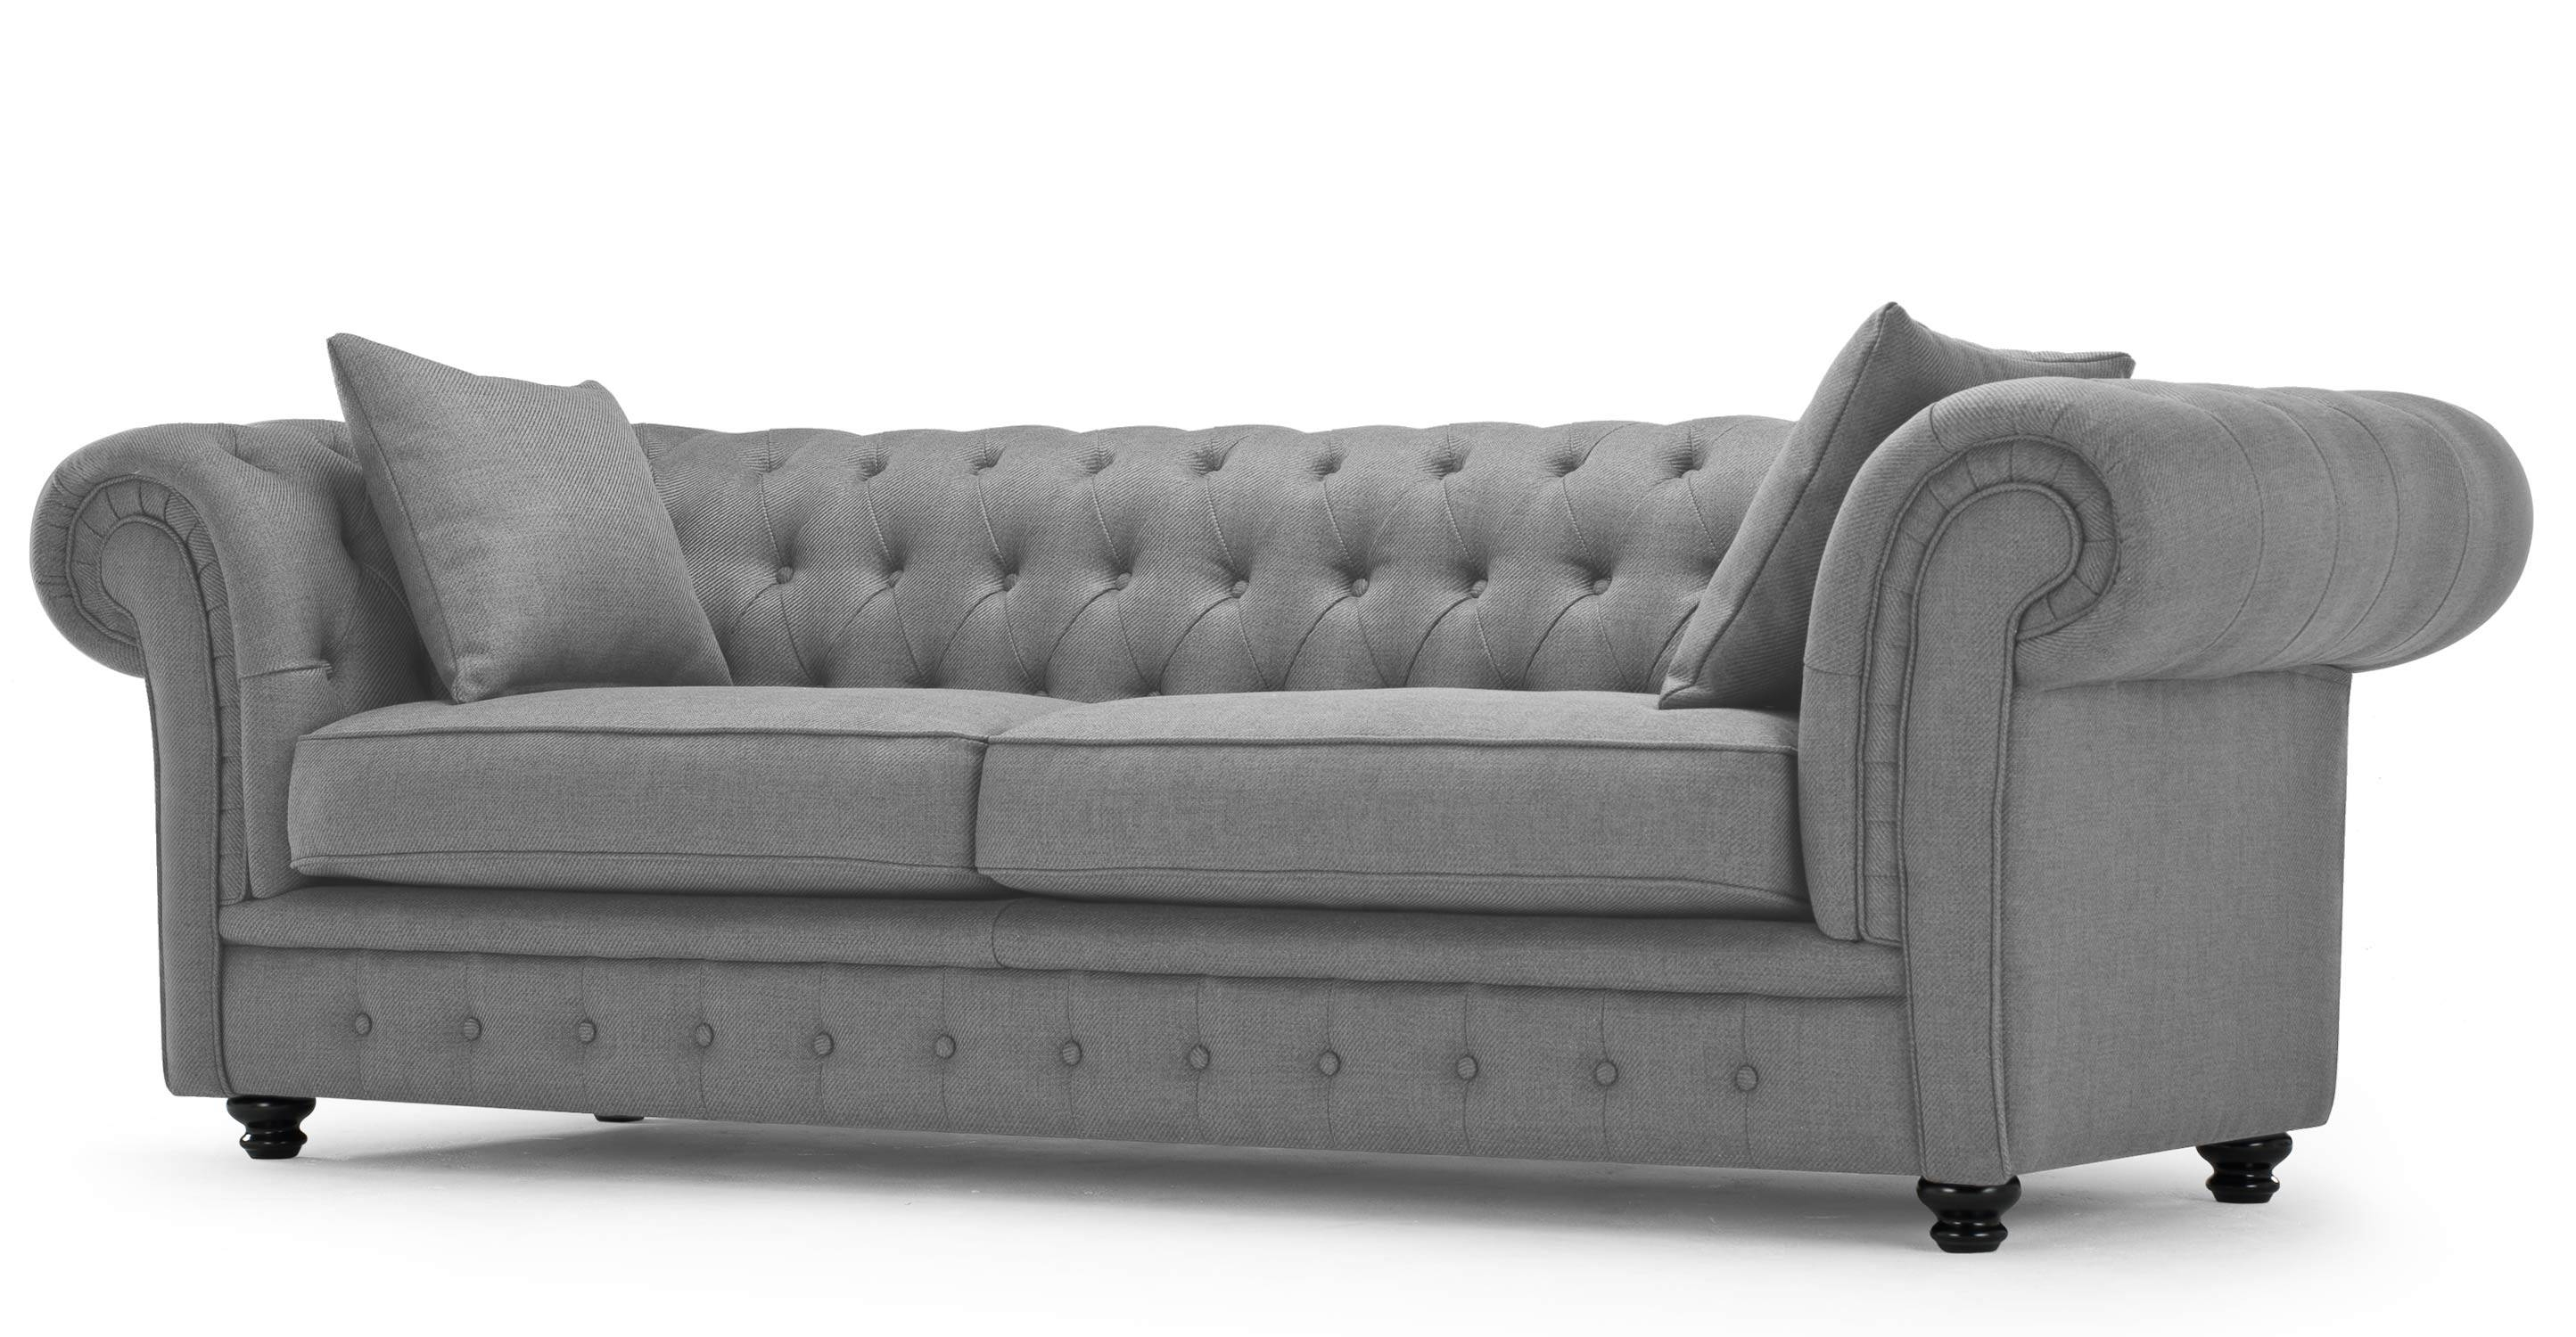 Furniture: Exquisite Comfort With Leather Tufted Sofa inside Cheap Tufted Sofas (Image 3 of 30)